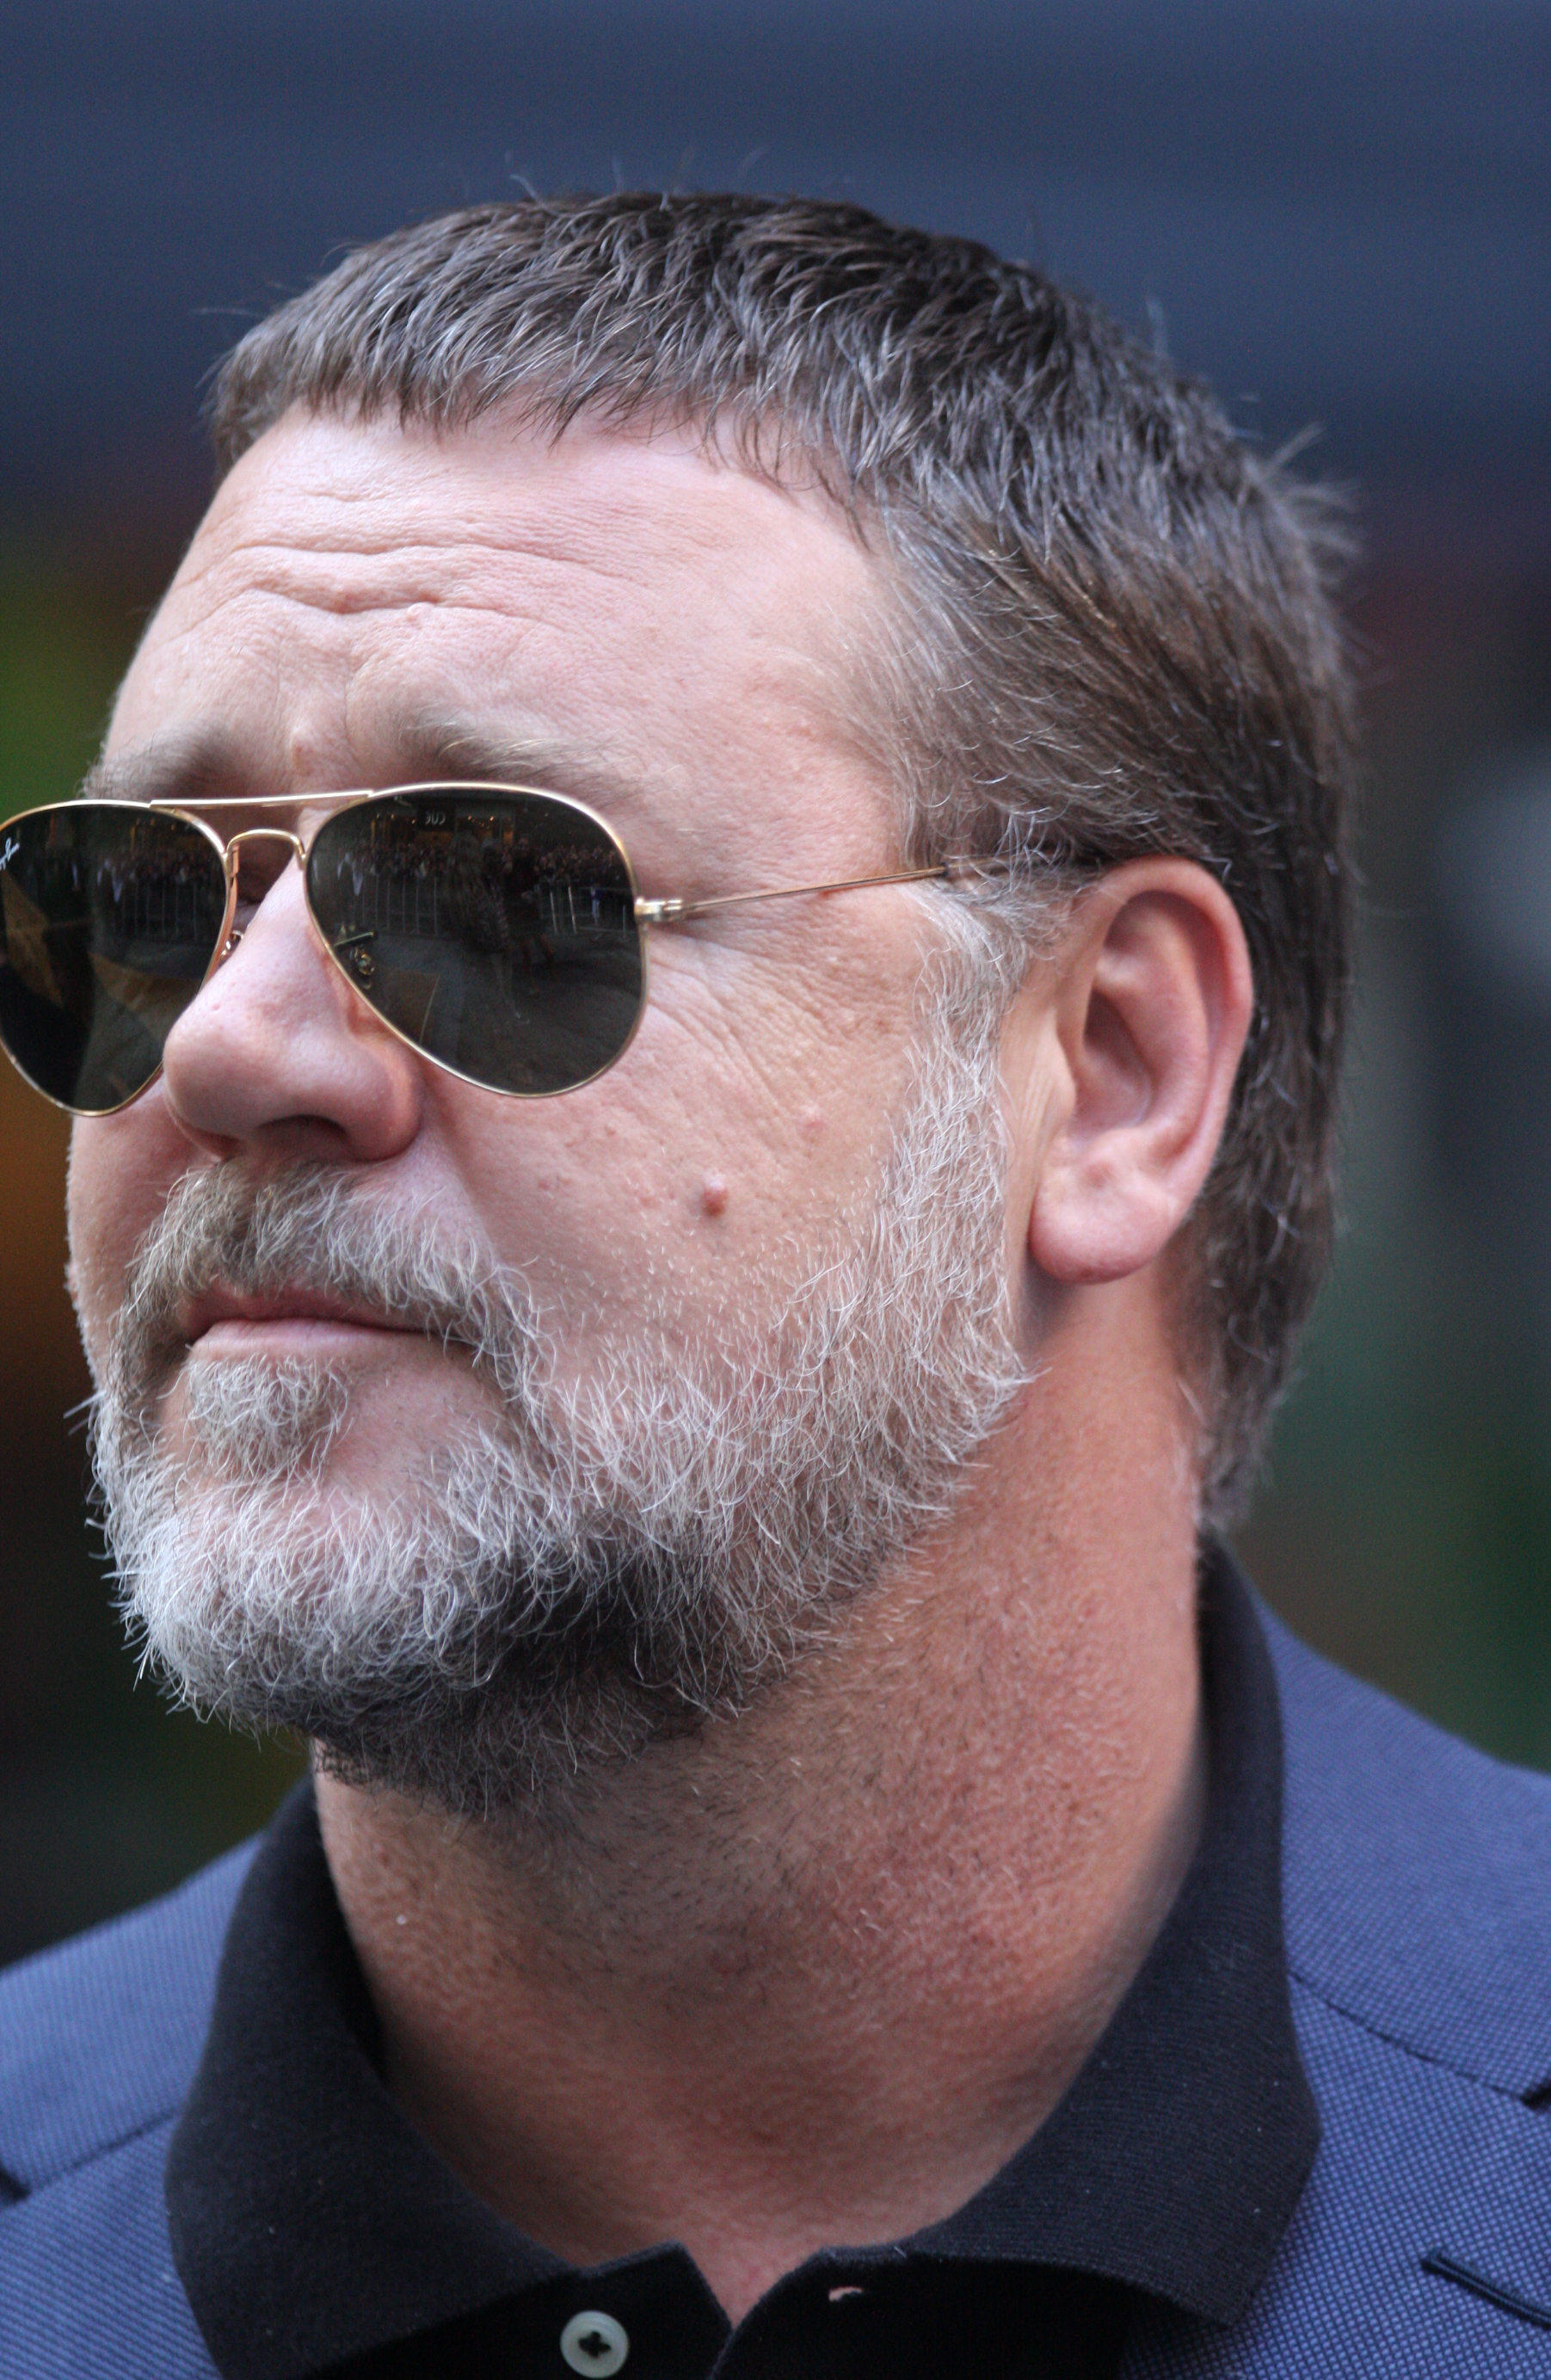 Russell Crowe photo #106672, Russell Crowe image